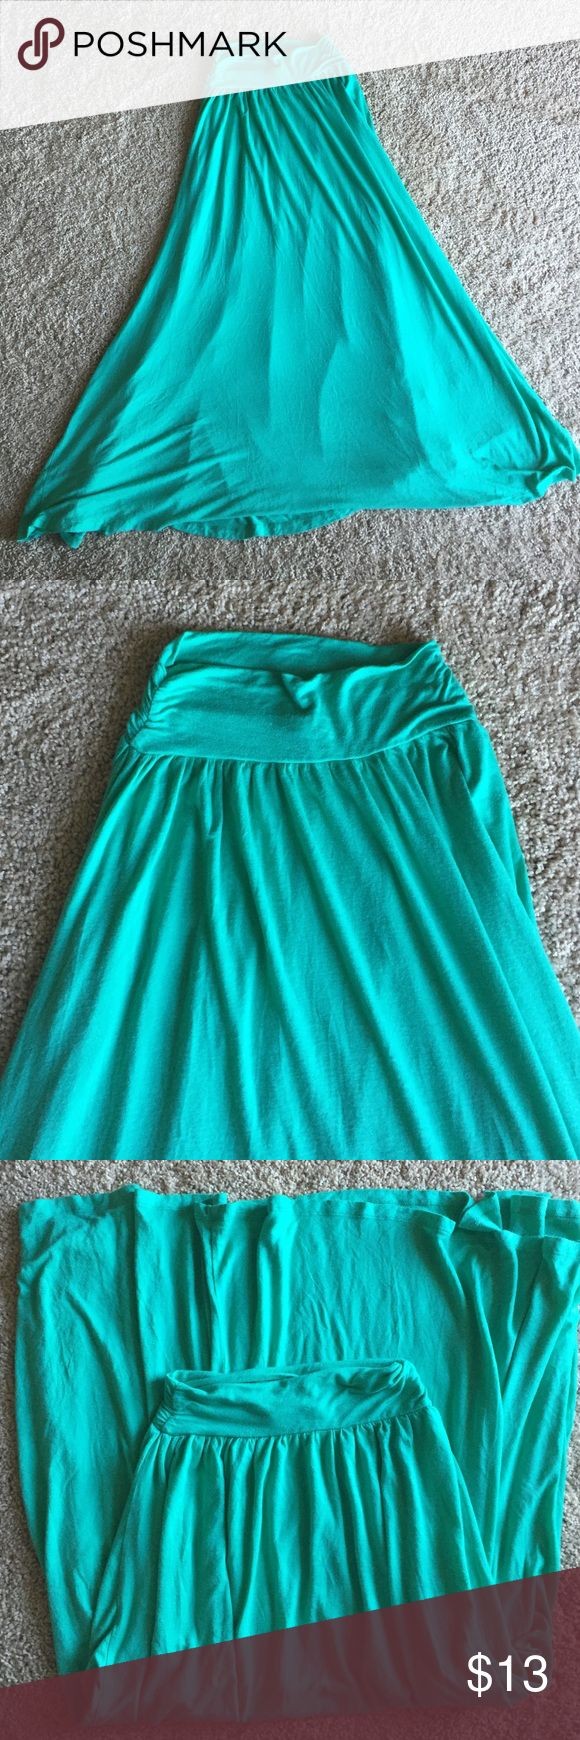 Mint Green Maxi Skirt Super cute and comfortable mint green maxi skirt! Great condition. Skirts Maxi